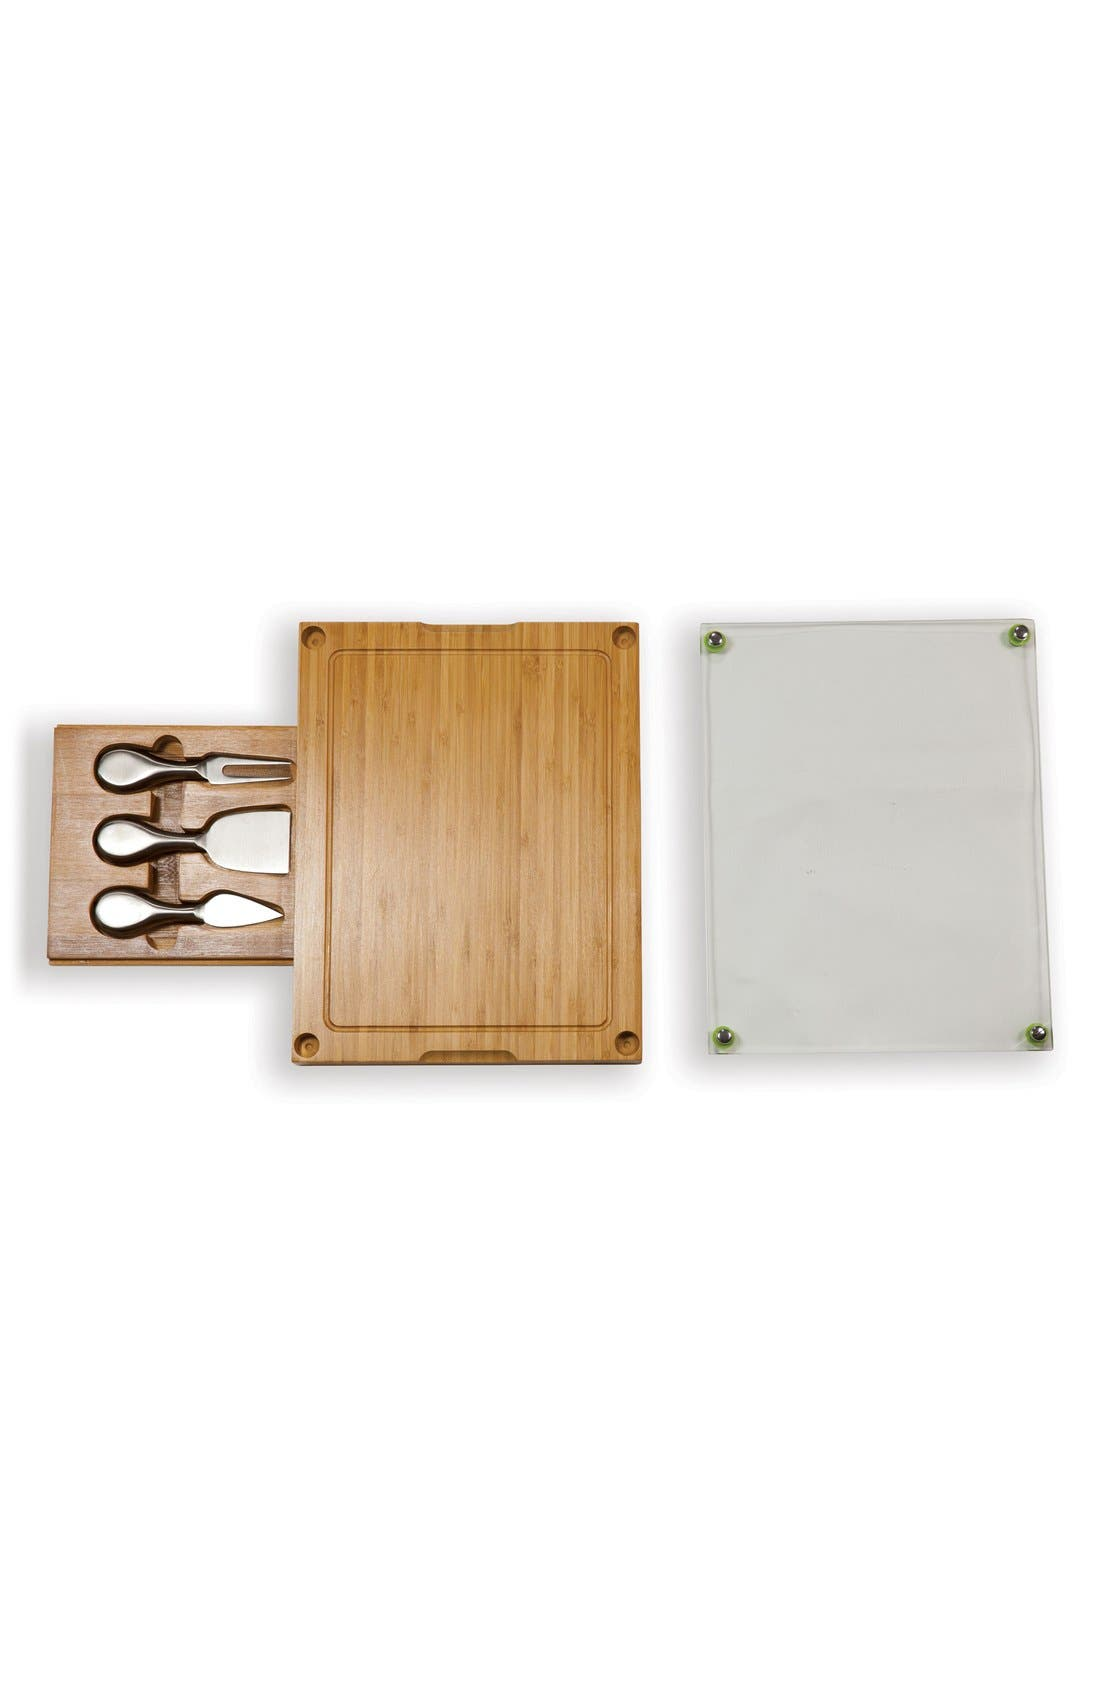 Alternate Image 3  - Picnic Time 'Concerto' Cutting Board Set